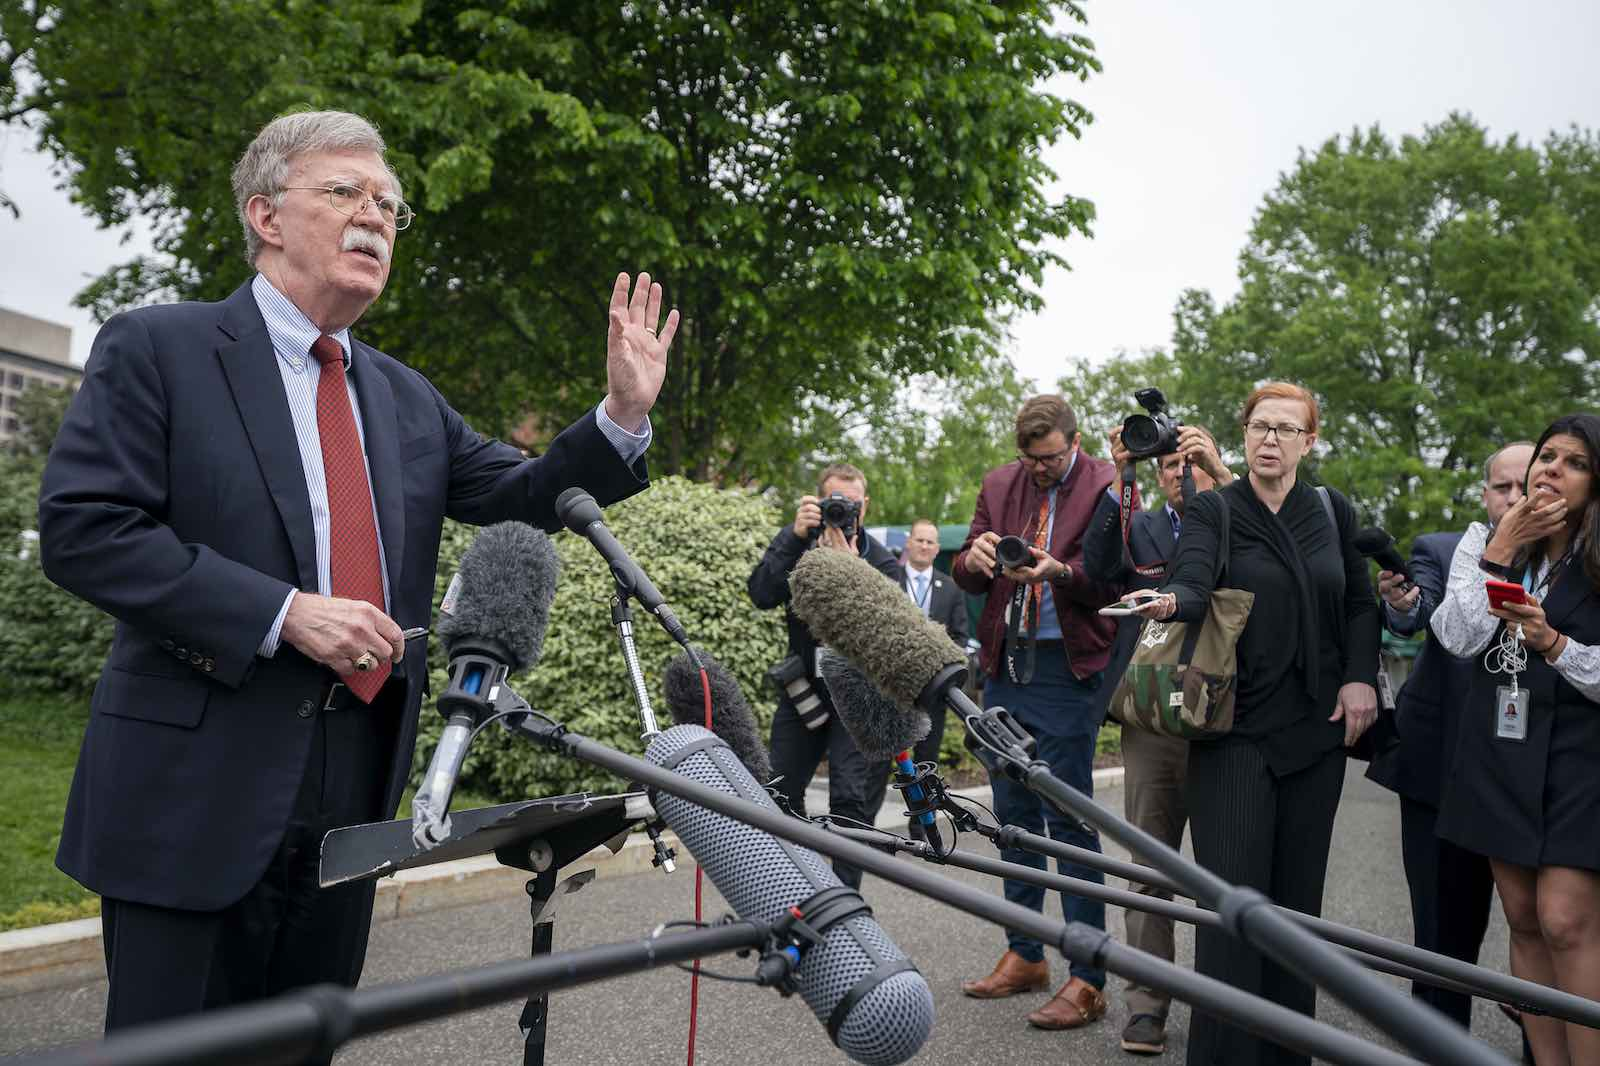 National Security Advisor John Bolton speaks to reporters outside the West Wing, May 2019 (Photo: The White House/Flickr)